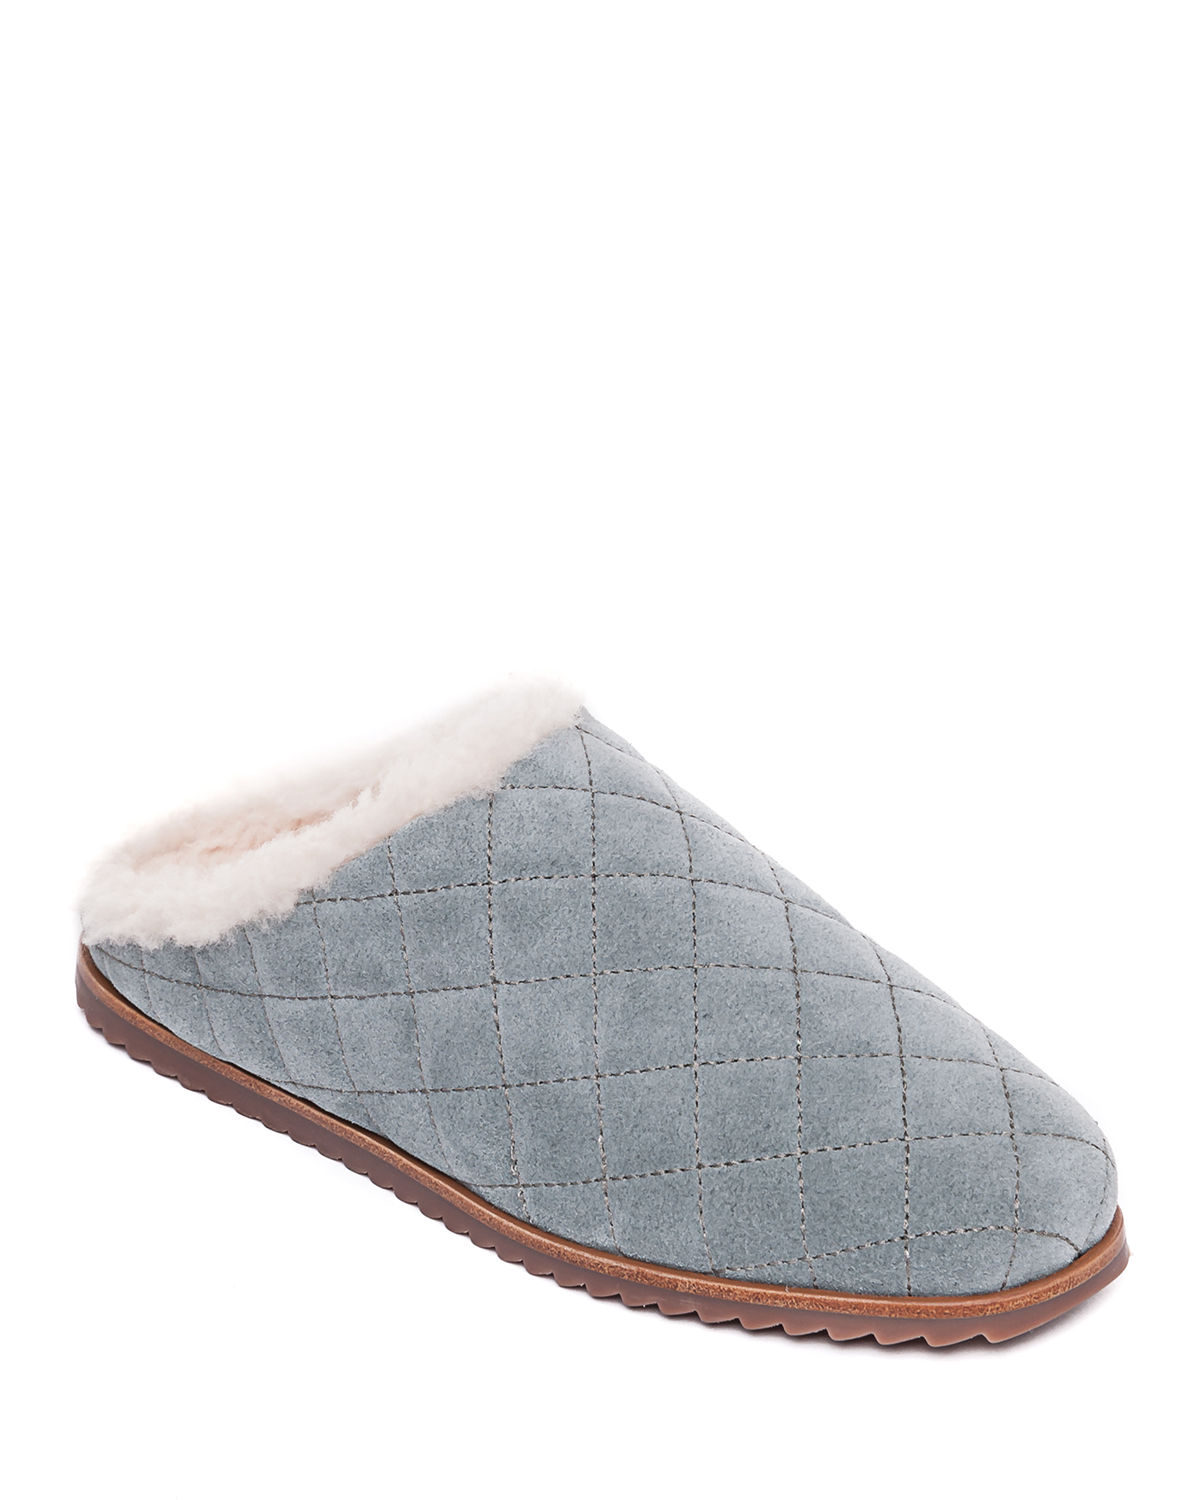 Quilted Suede Shearling Slippers